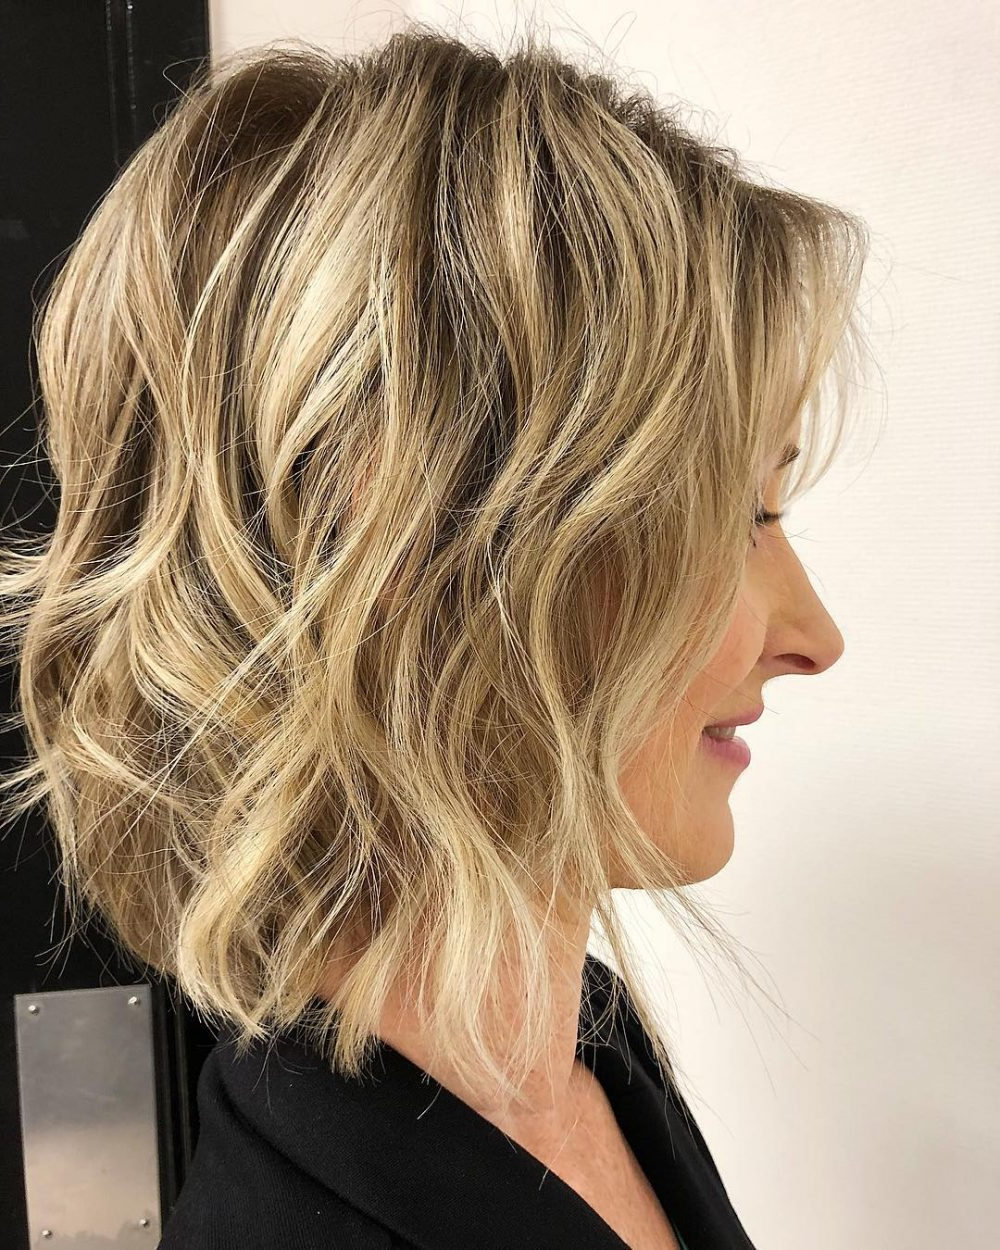 43 Perfect Short Hairstyles For Fine Hair In 2018 With Angelic Blonde Balayage Bob Hairstyles With Curls (View 15 of 25)